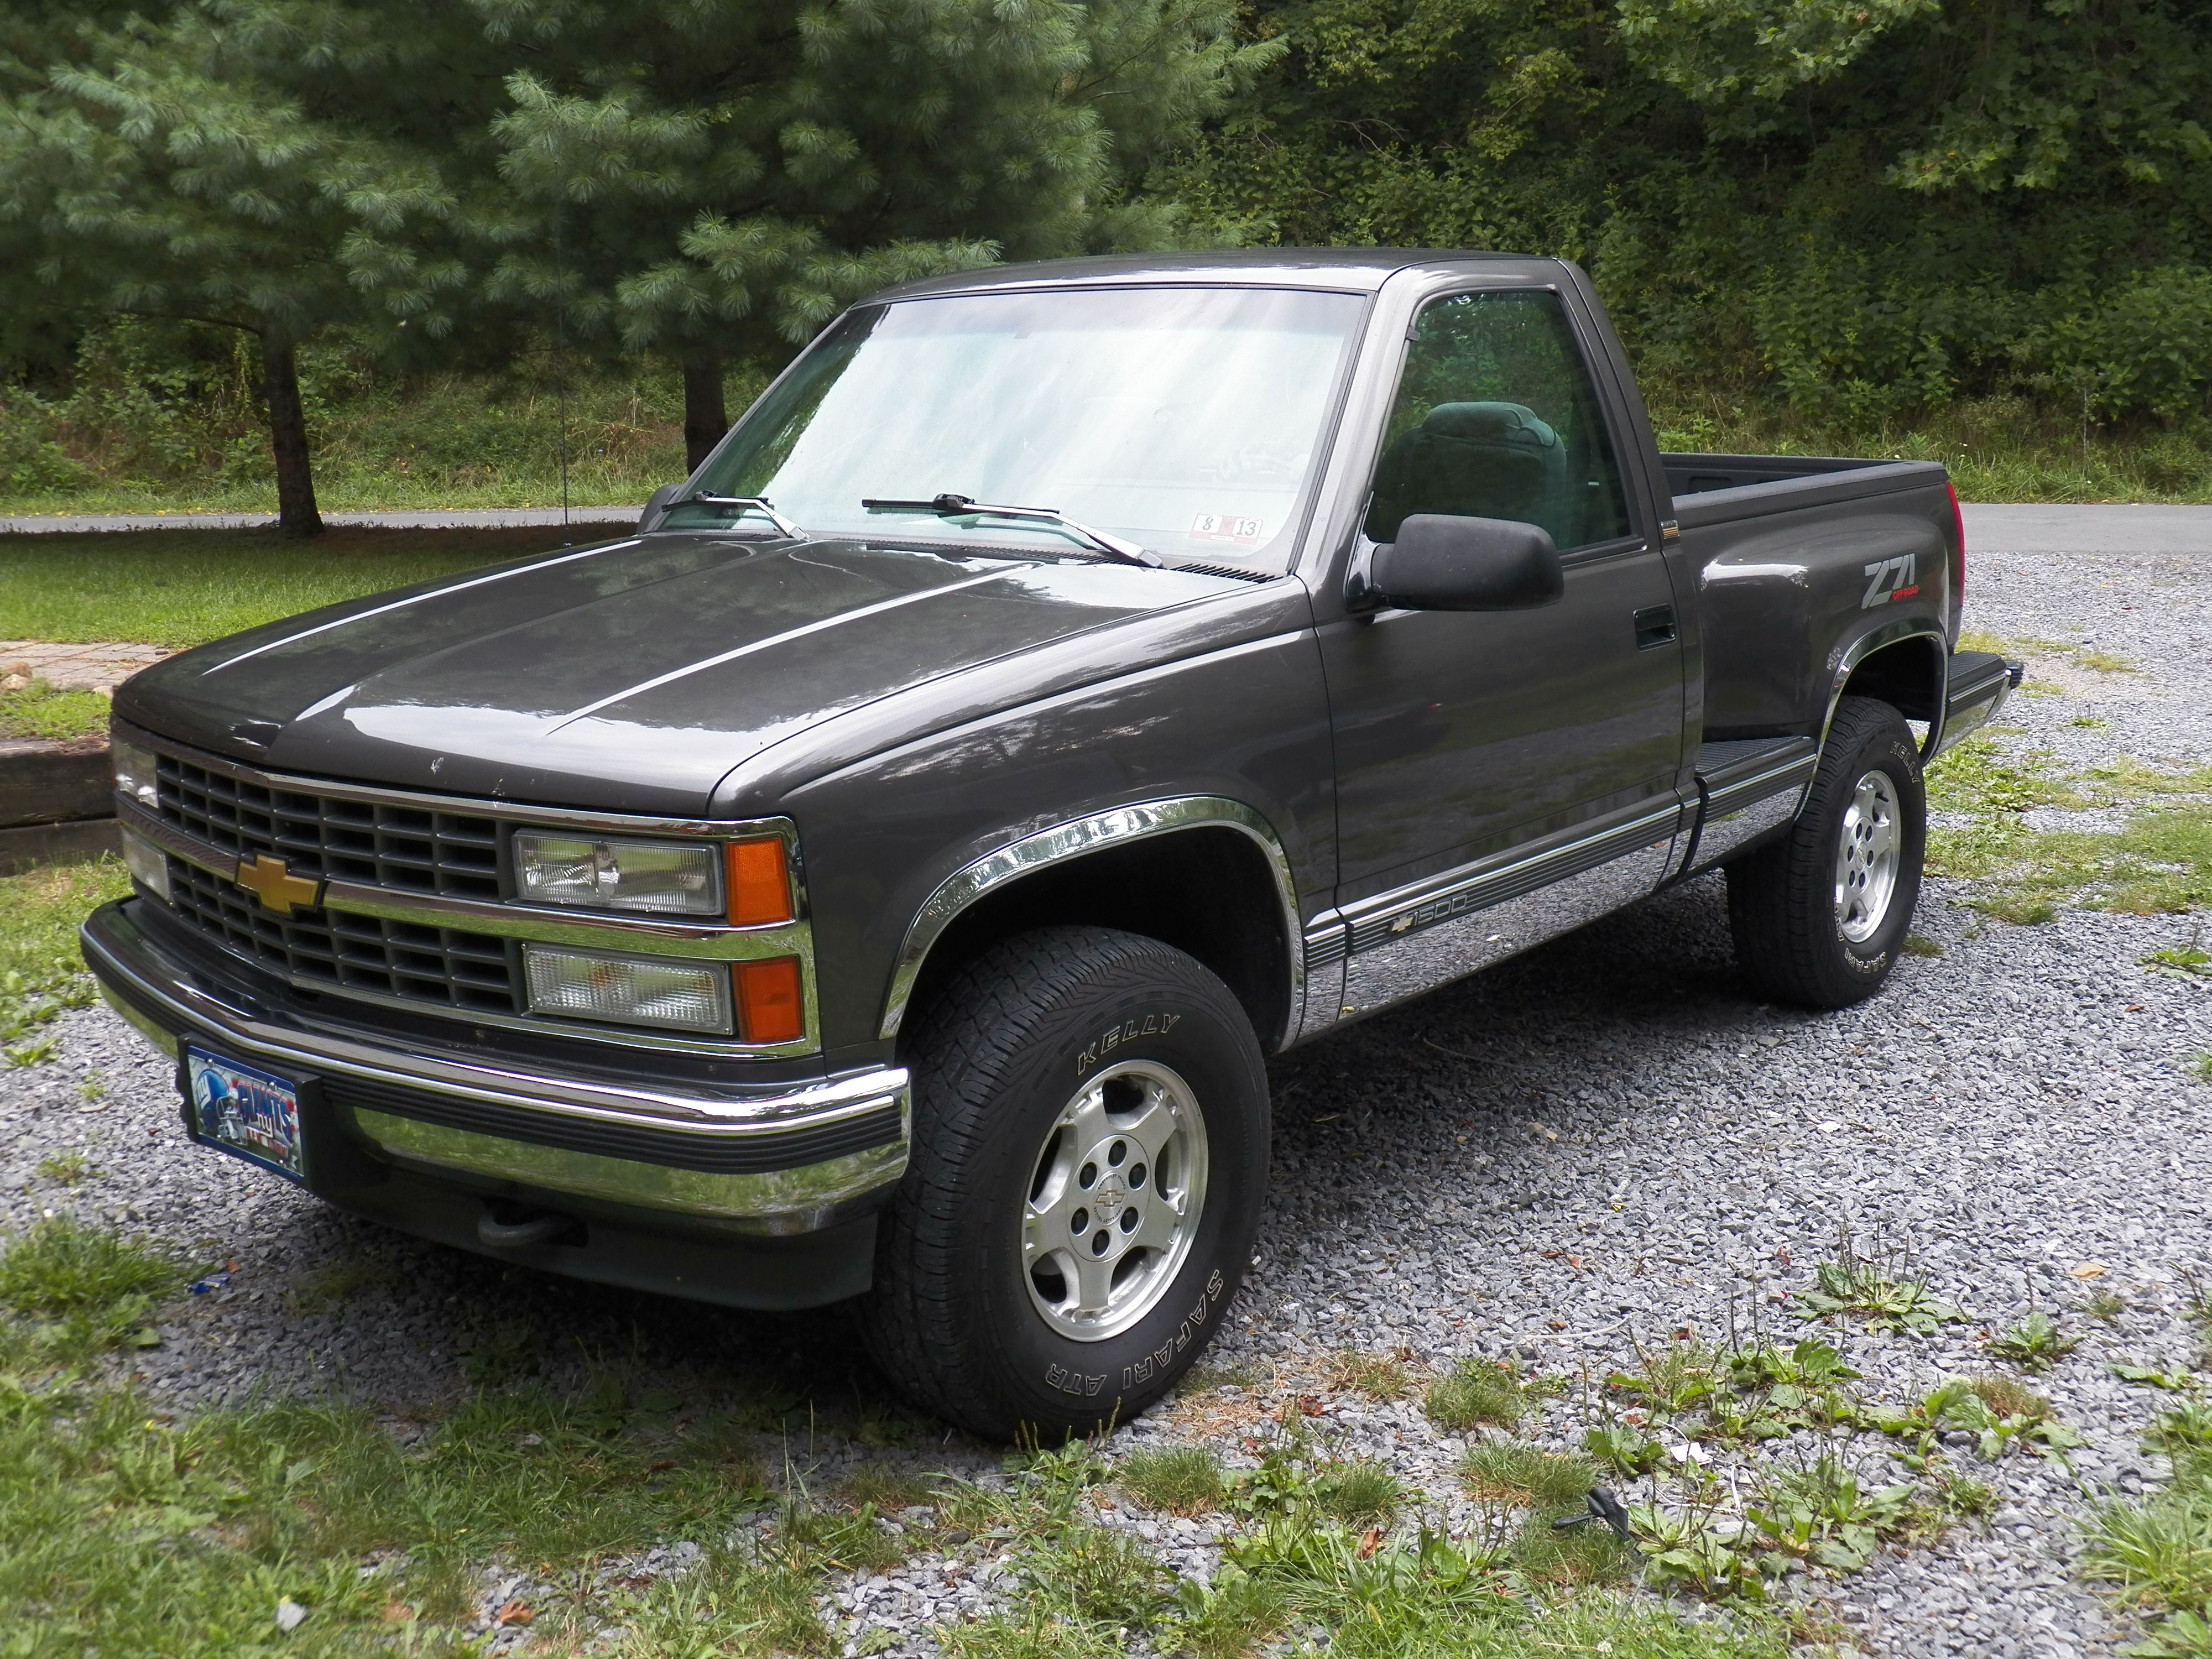 hight resolution of my pretty baby 1994 chevy stepside truck 350 z71 gunmetal grey i ve wanted one of these since i was a teen bought this one about 3 weeks ago 3